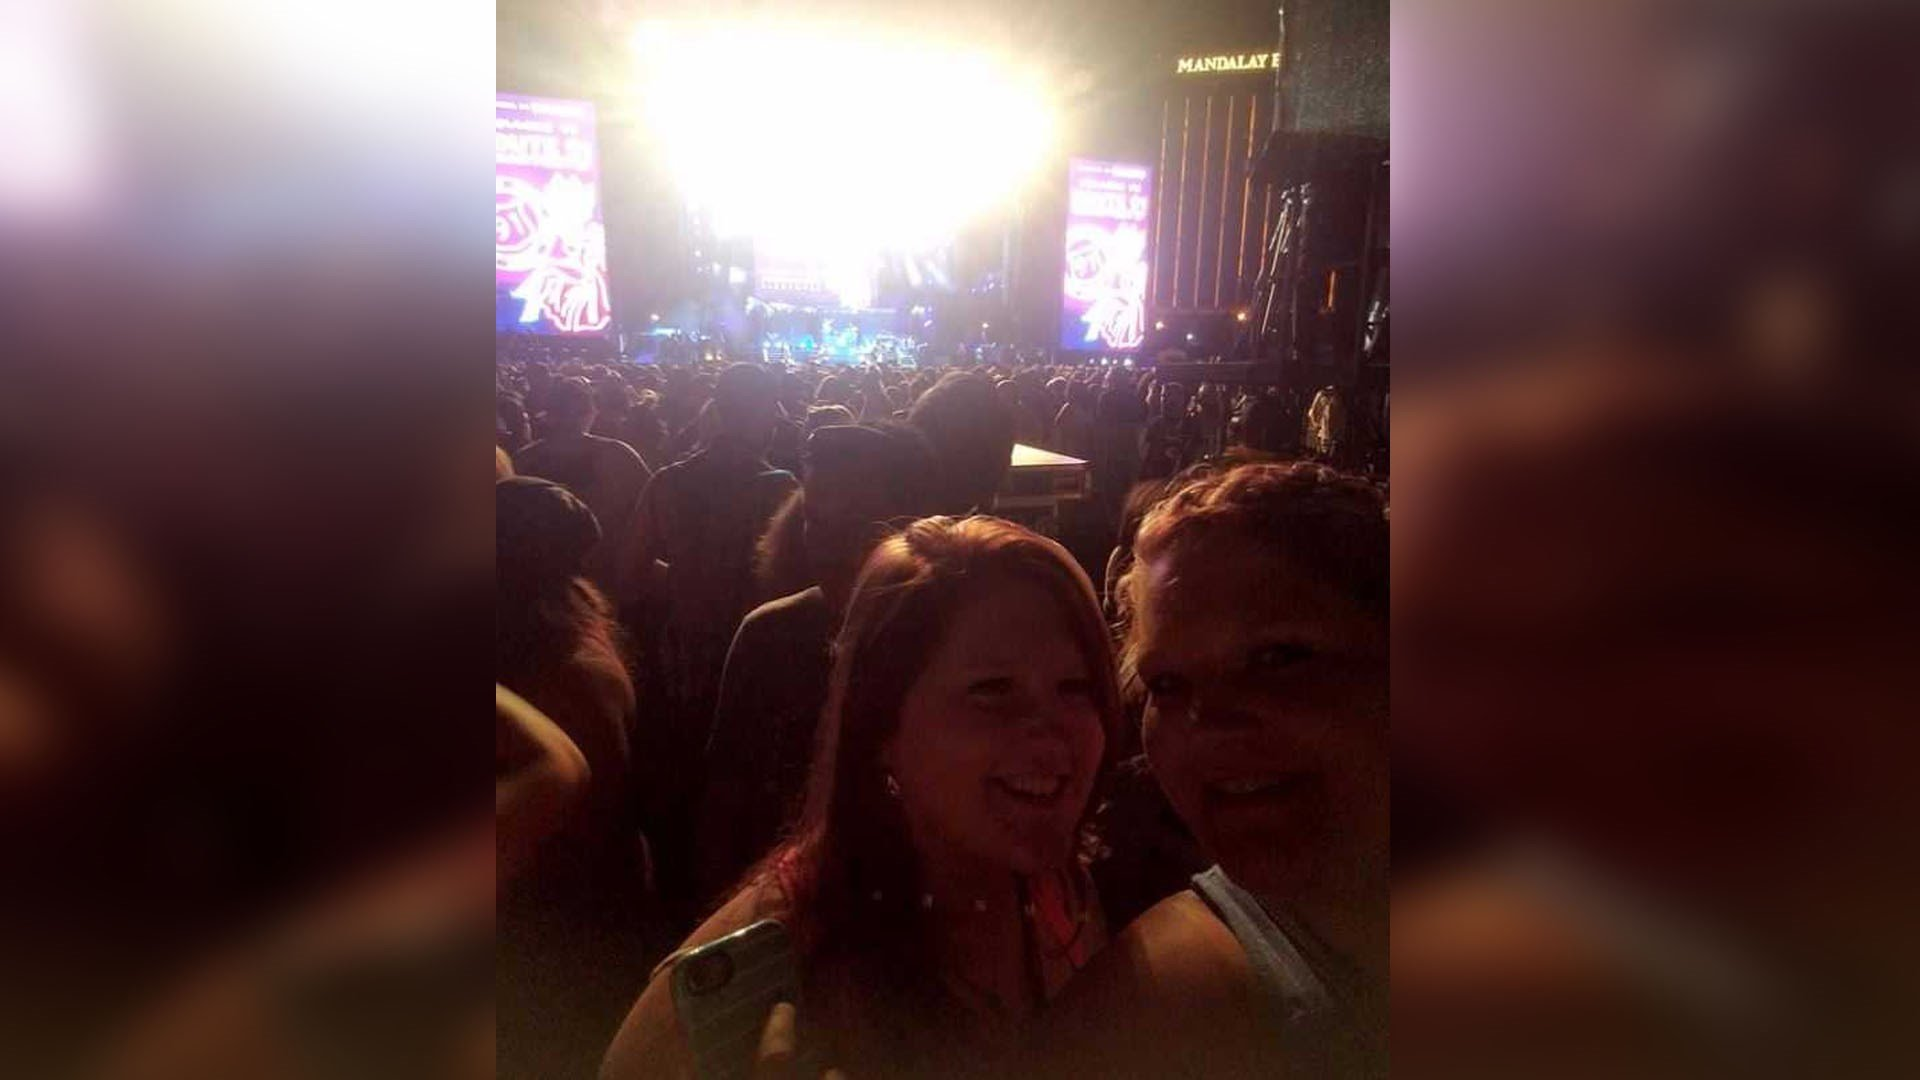 Photo Courtesy: Katie Burgett. Burgett was at the concert when the Las Vegas shooting happened.